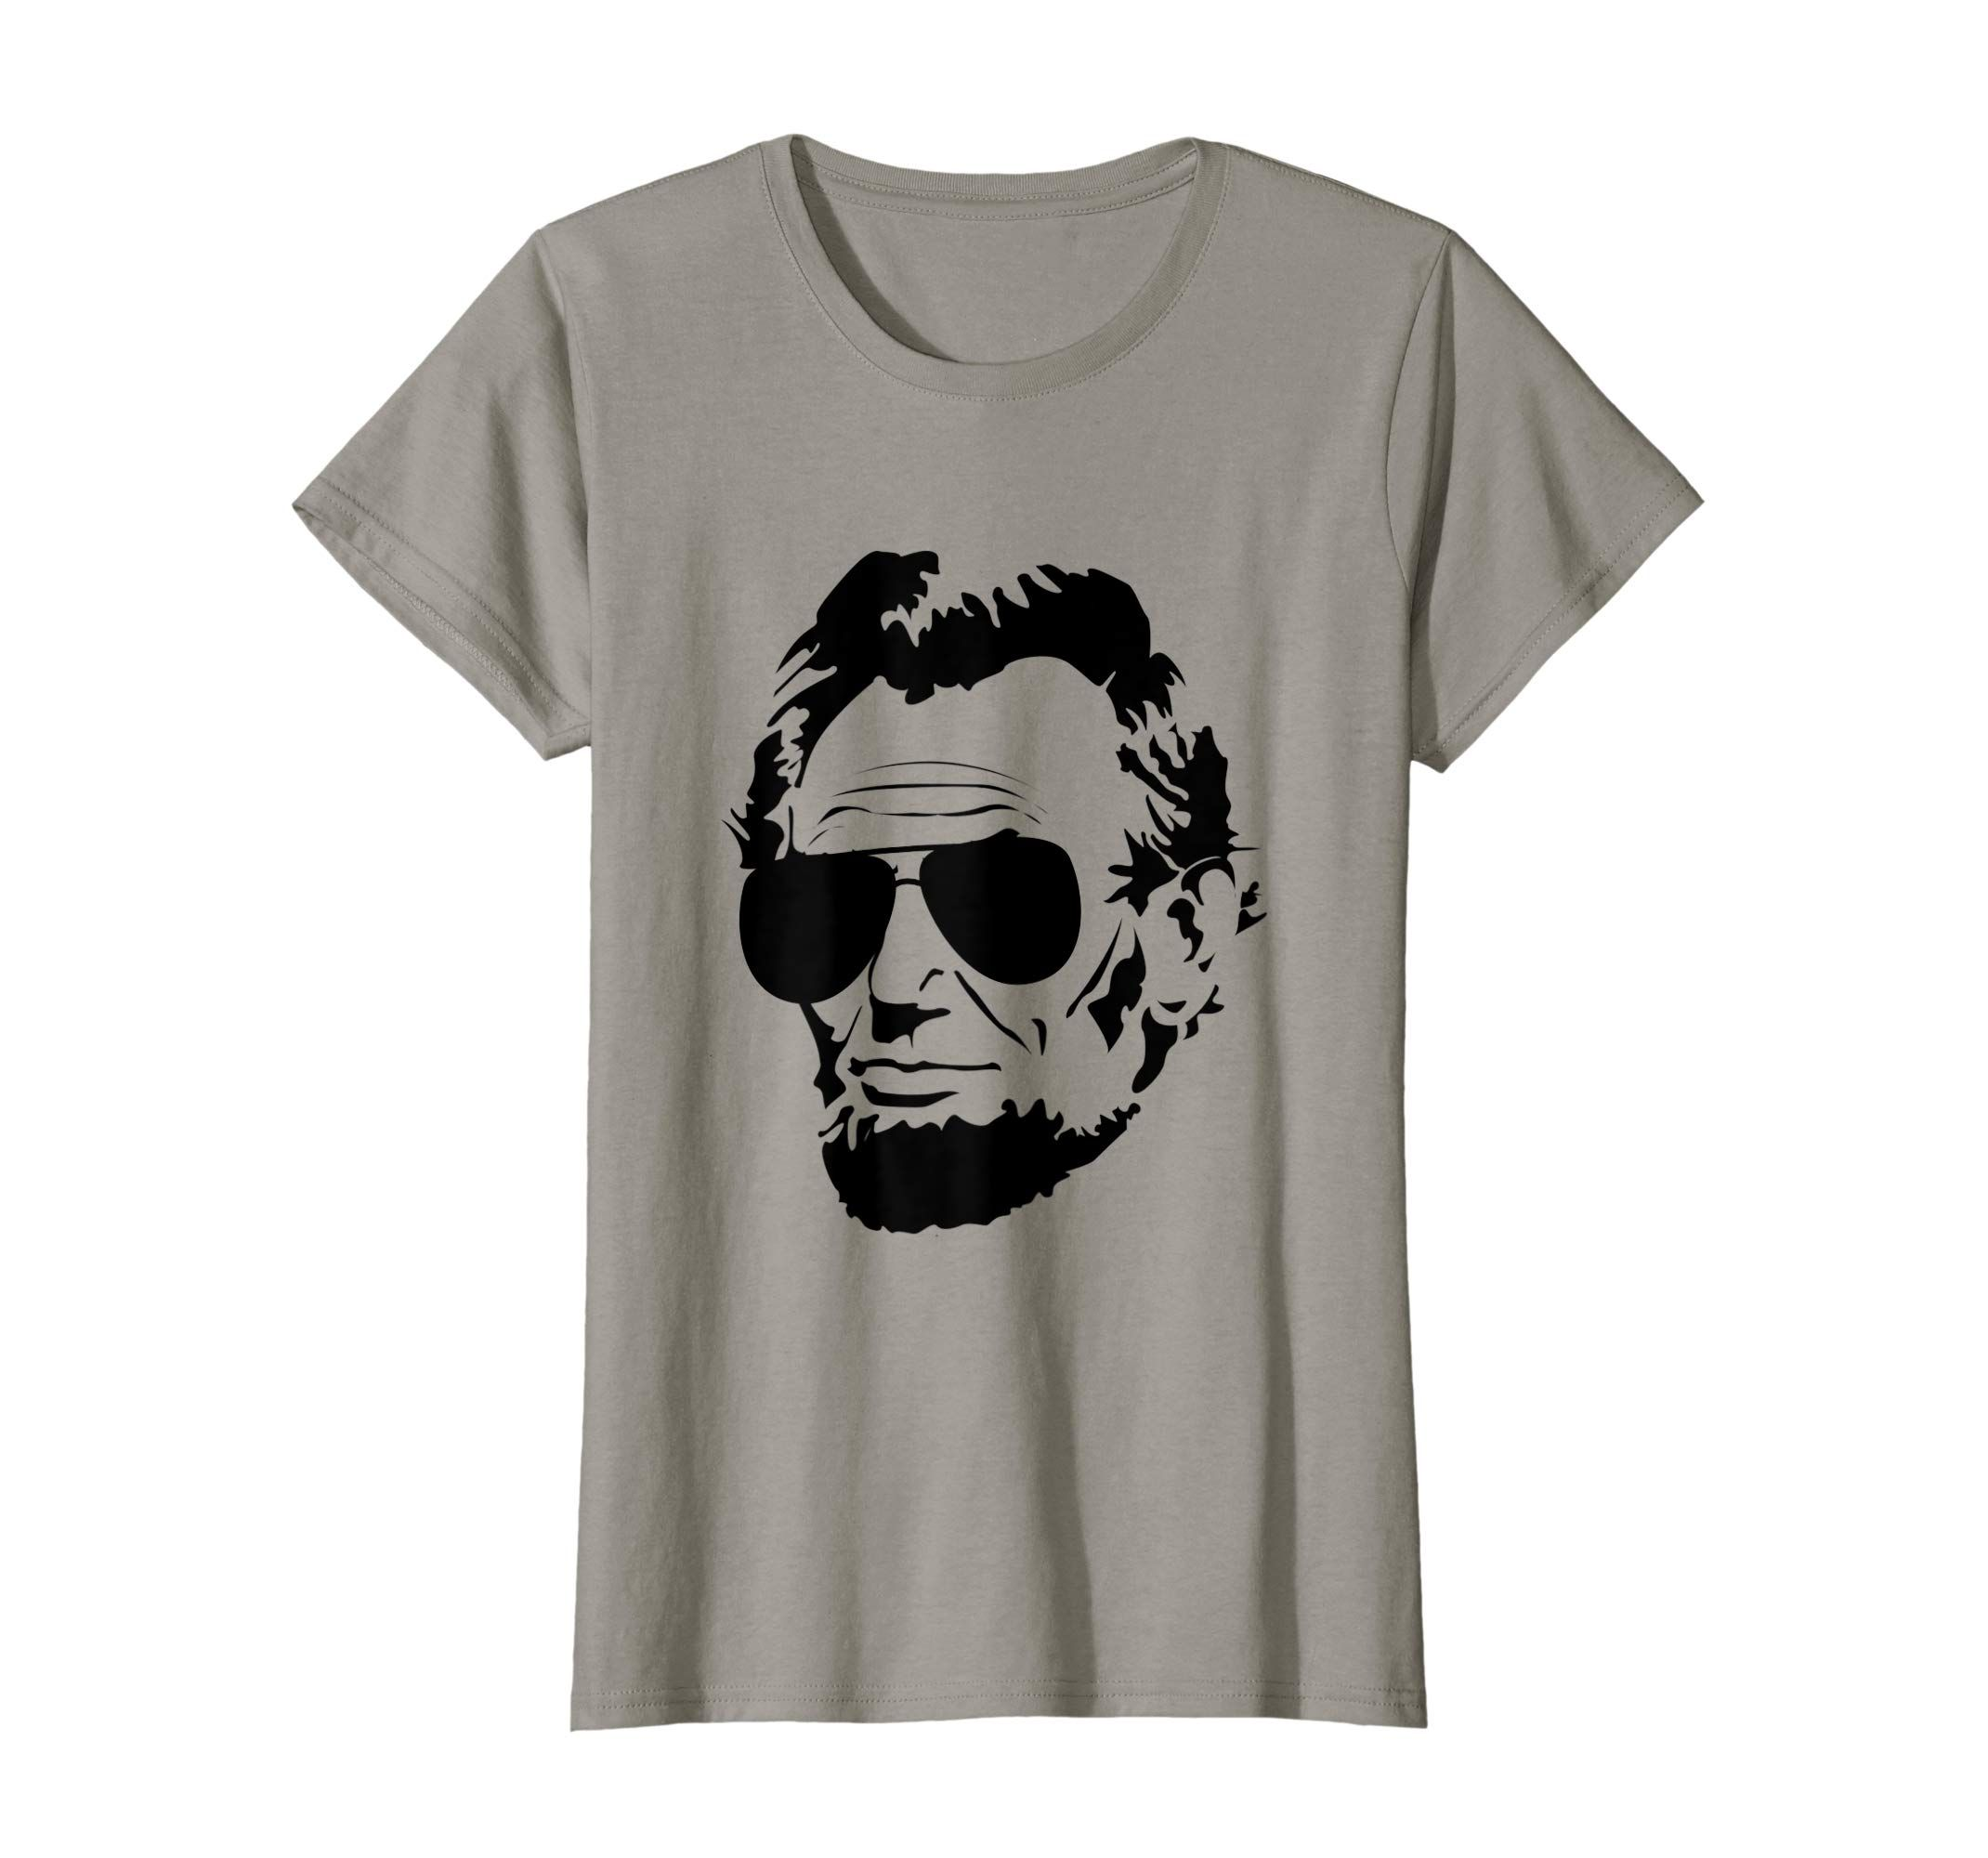 Abe Lincoln T Shirt Abraham Lincoln Portrait With Sunglasses Yolotee In 2021 Yolotee T Shirt Shirts [ 2000 x 2140 Pixel ]